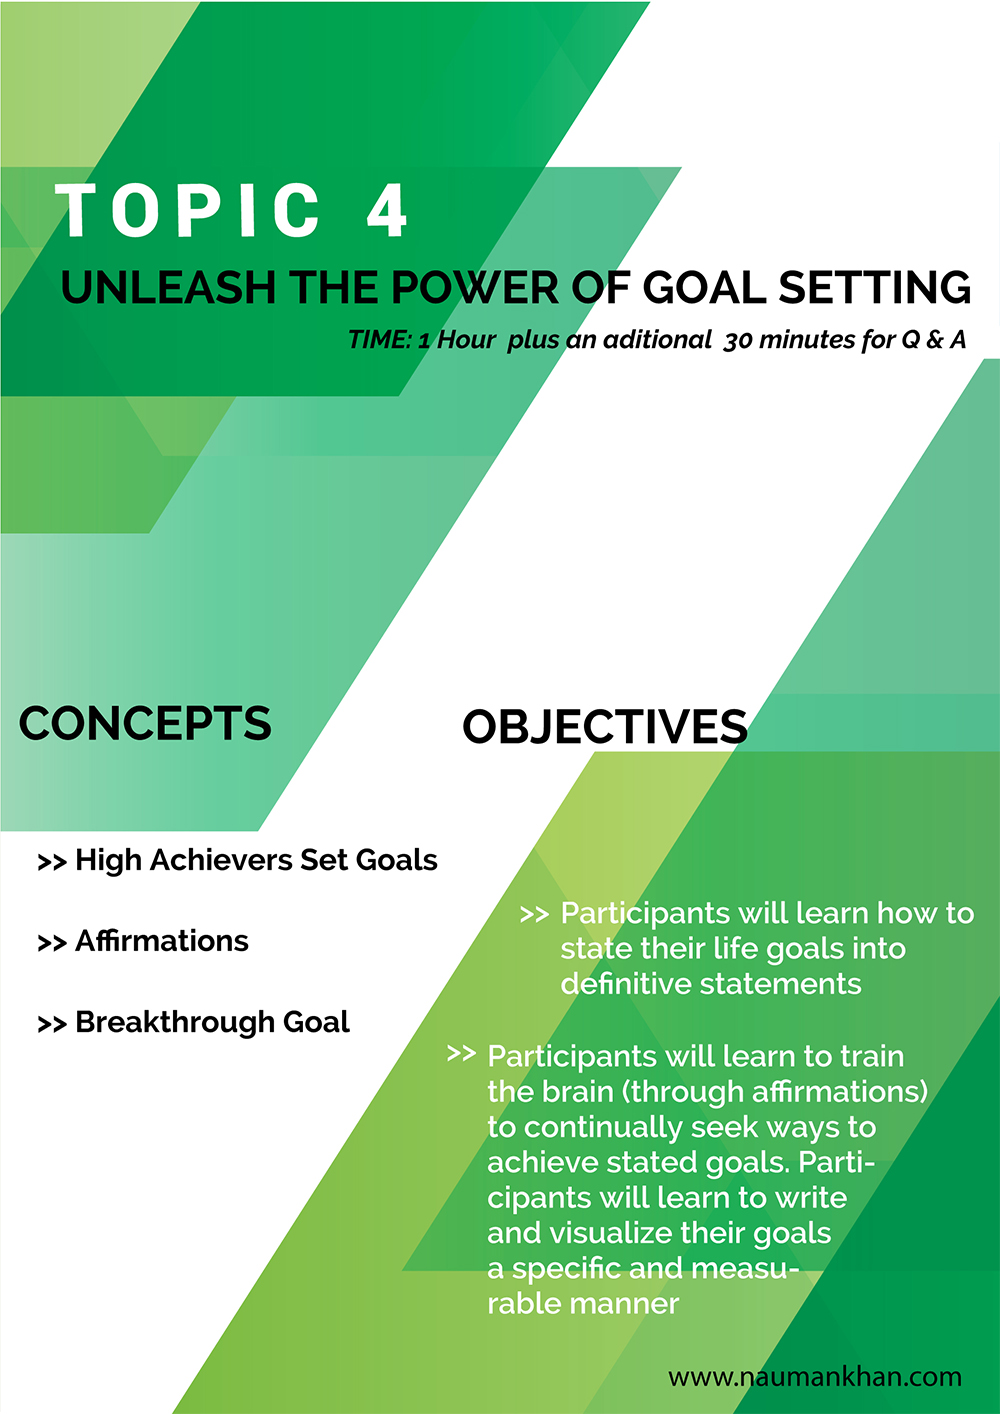 Unleash the Power of Goal Setting